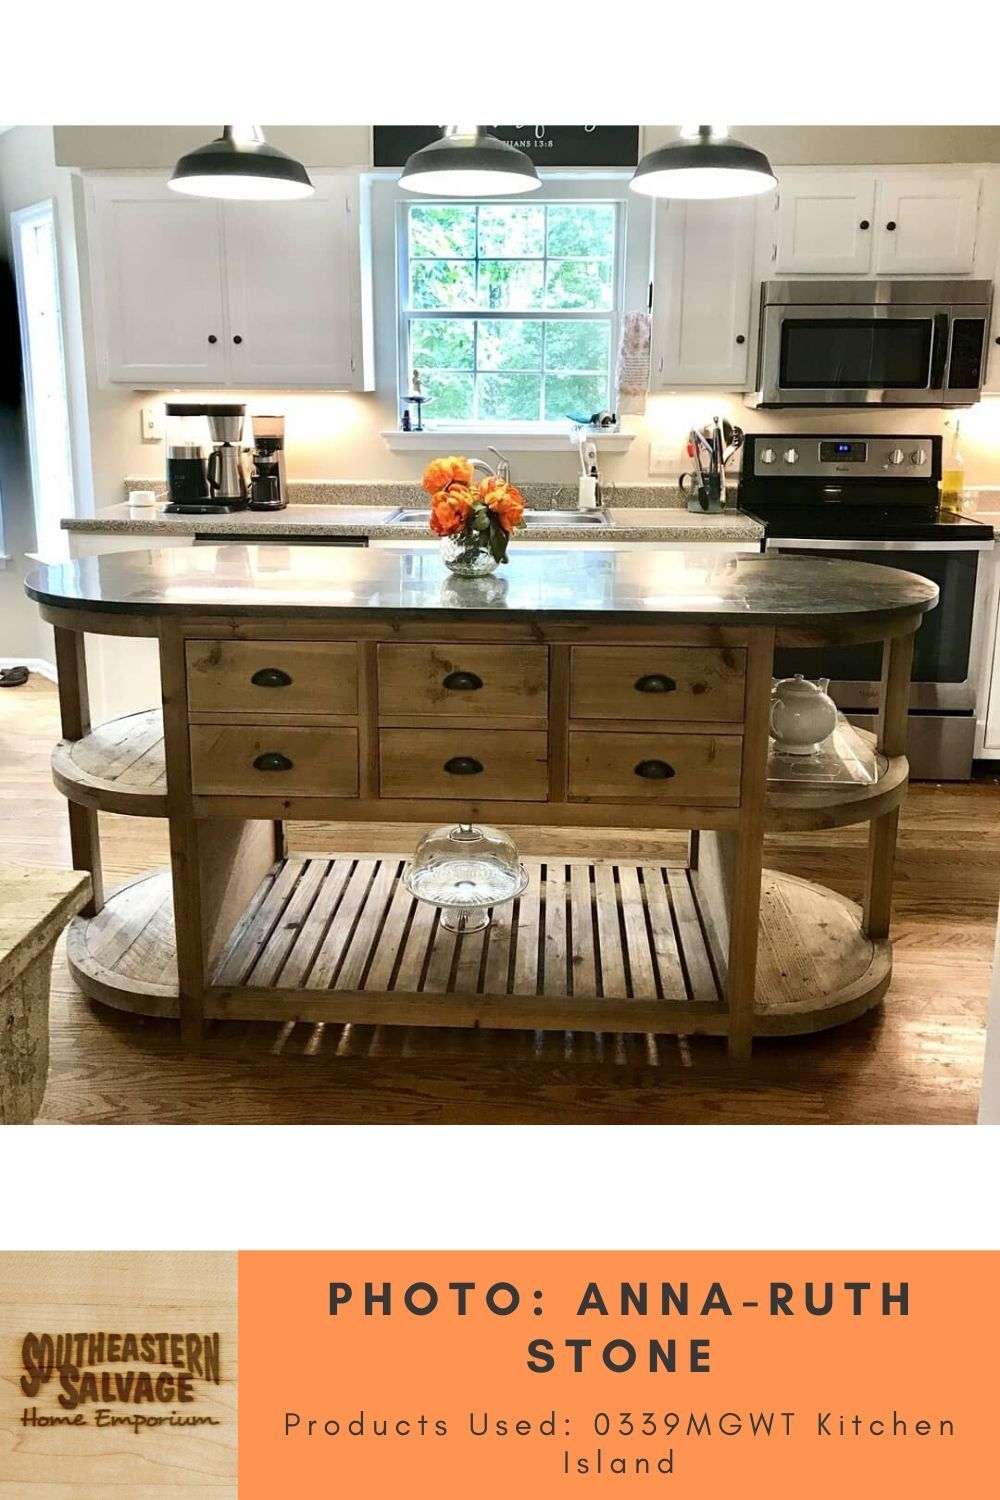 Kitchen By Anna Ruth Stone Reclaimed Wood Kitchen Island Southeastern Salvage Home Emporium In 2020 Wood Kitchen Wood Kitchen Island Reclaimed Wood Kitchen Island